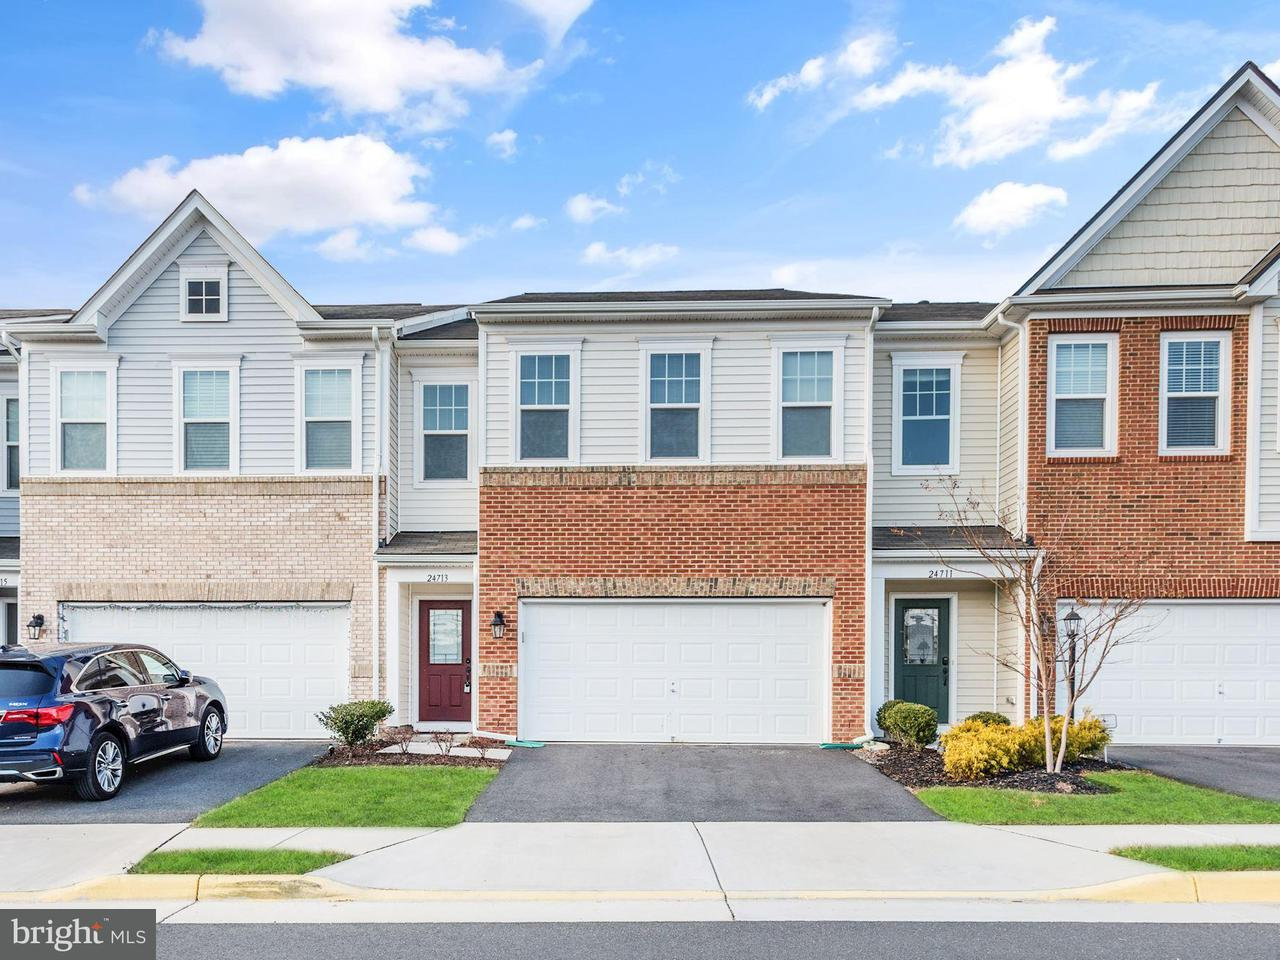 Townhouse for Sale at 24713 Gracehill Ter 24713 Gracehill Ter Aldie, Virginia 20105 United States